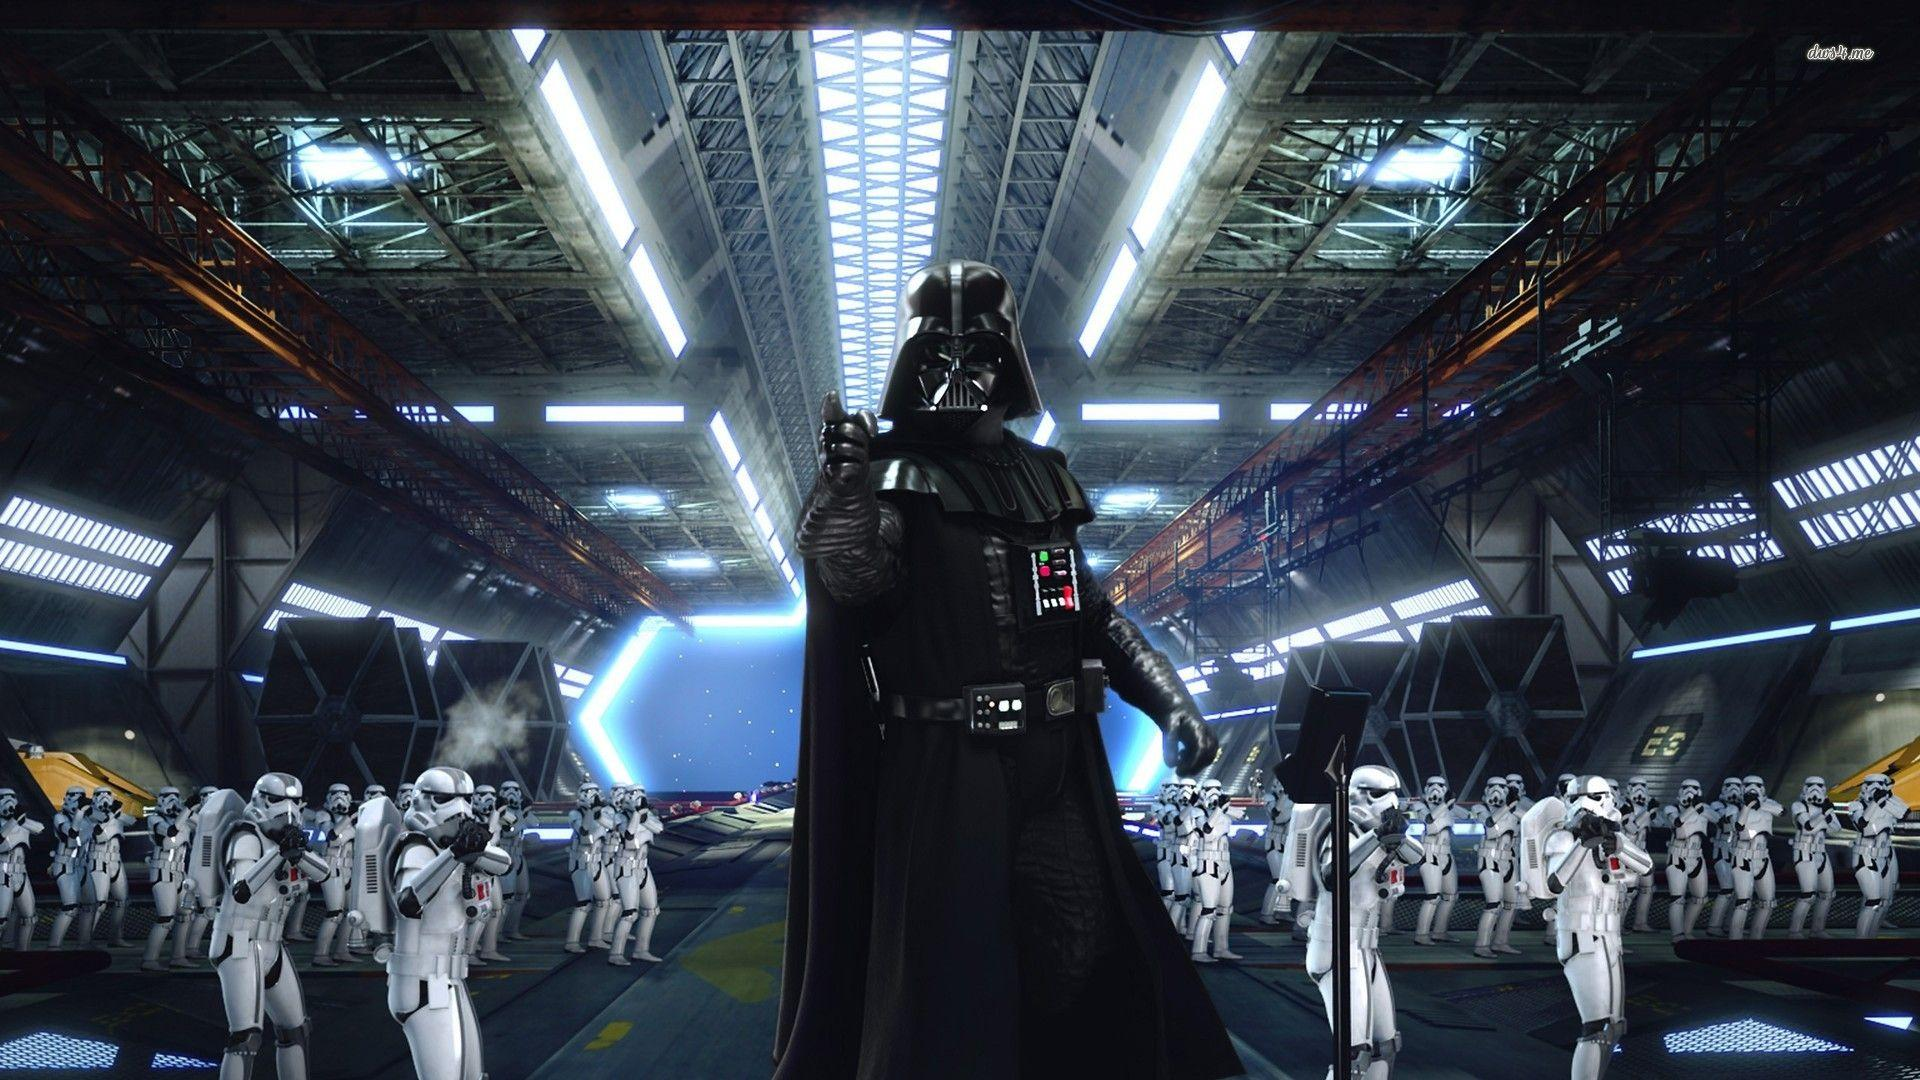 15053 darth vader and stormtroopers 1920x1080 movie wallpaper ...